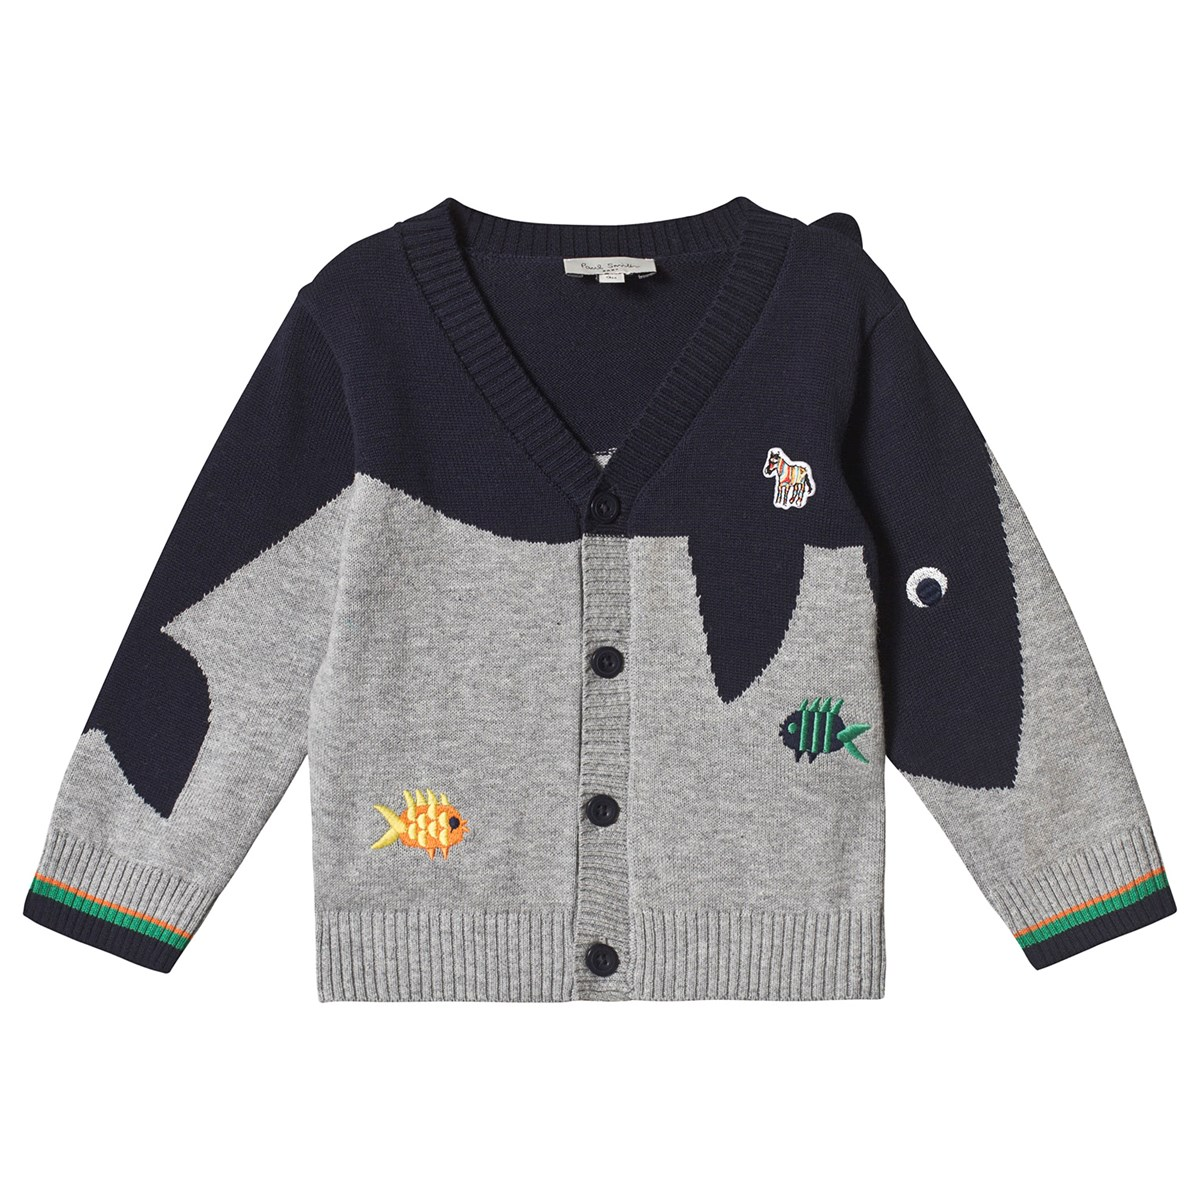 b87f35d36 Paul Smith Junior Grey and Navy Shark Intarsia and Fish Applique ...